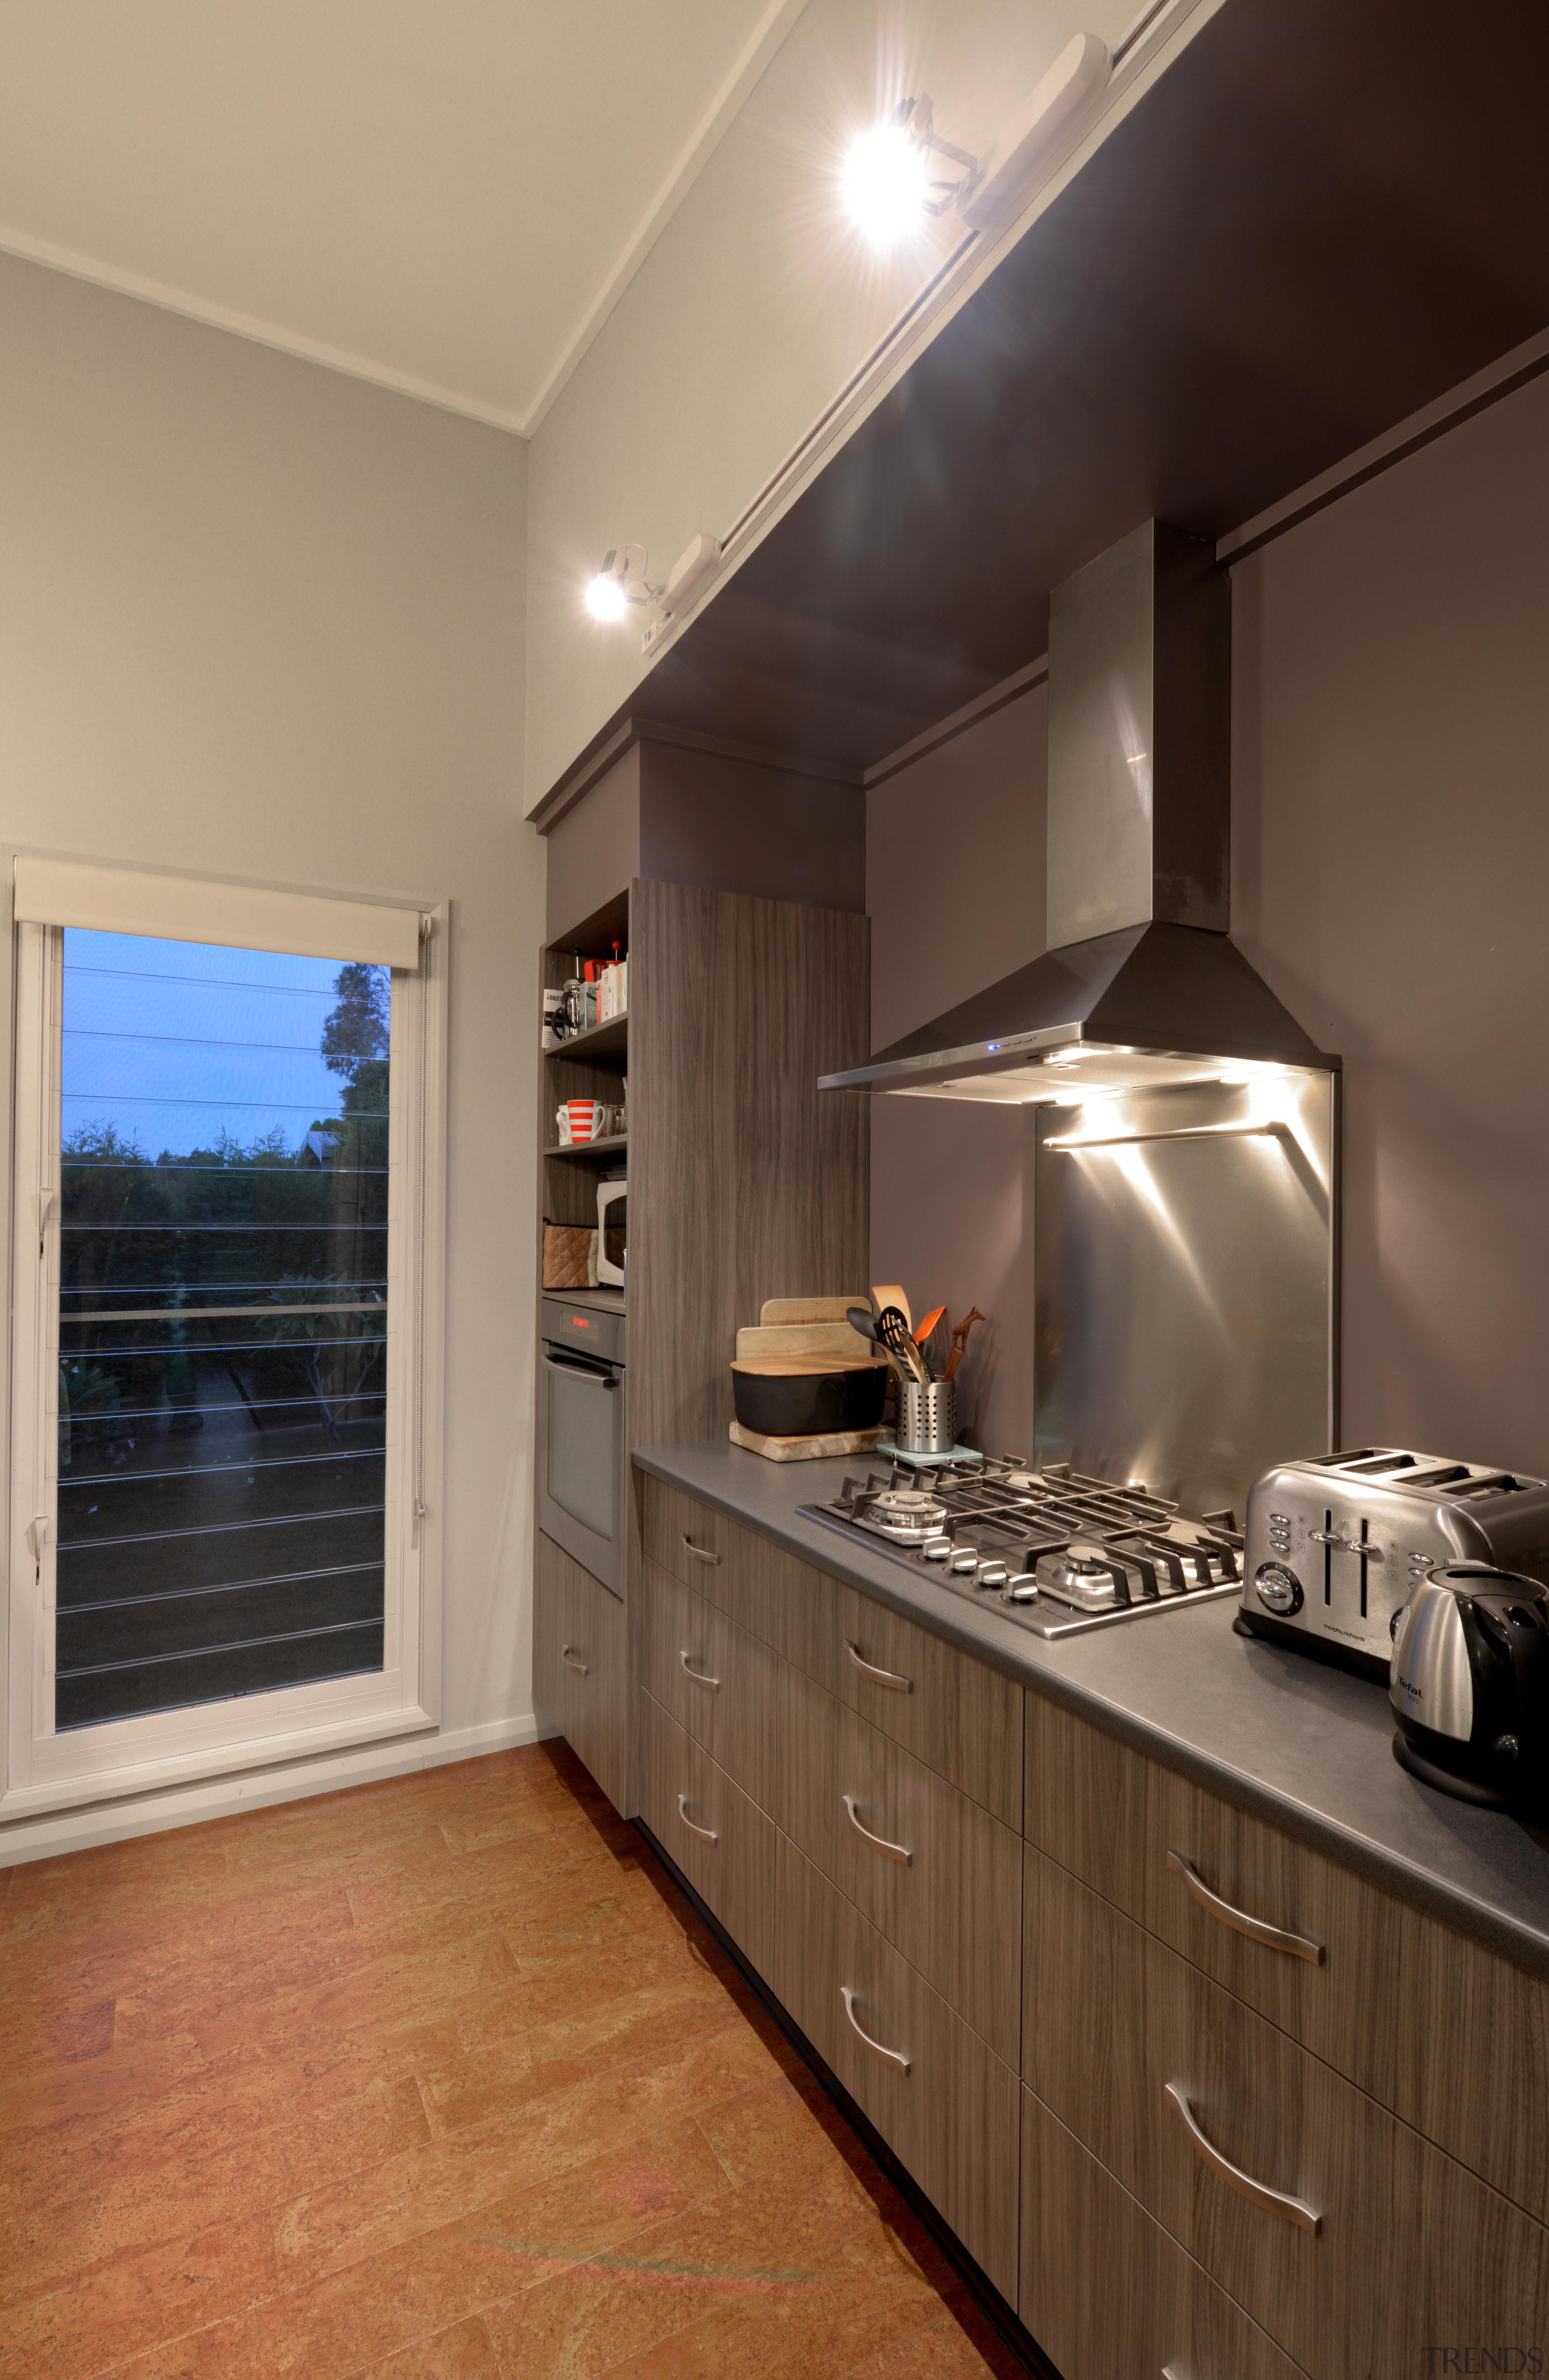 At Manor we believe in harmony - harmony cabinetry, countertop, home, interior design, kitchen, real estate, room, brown